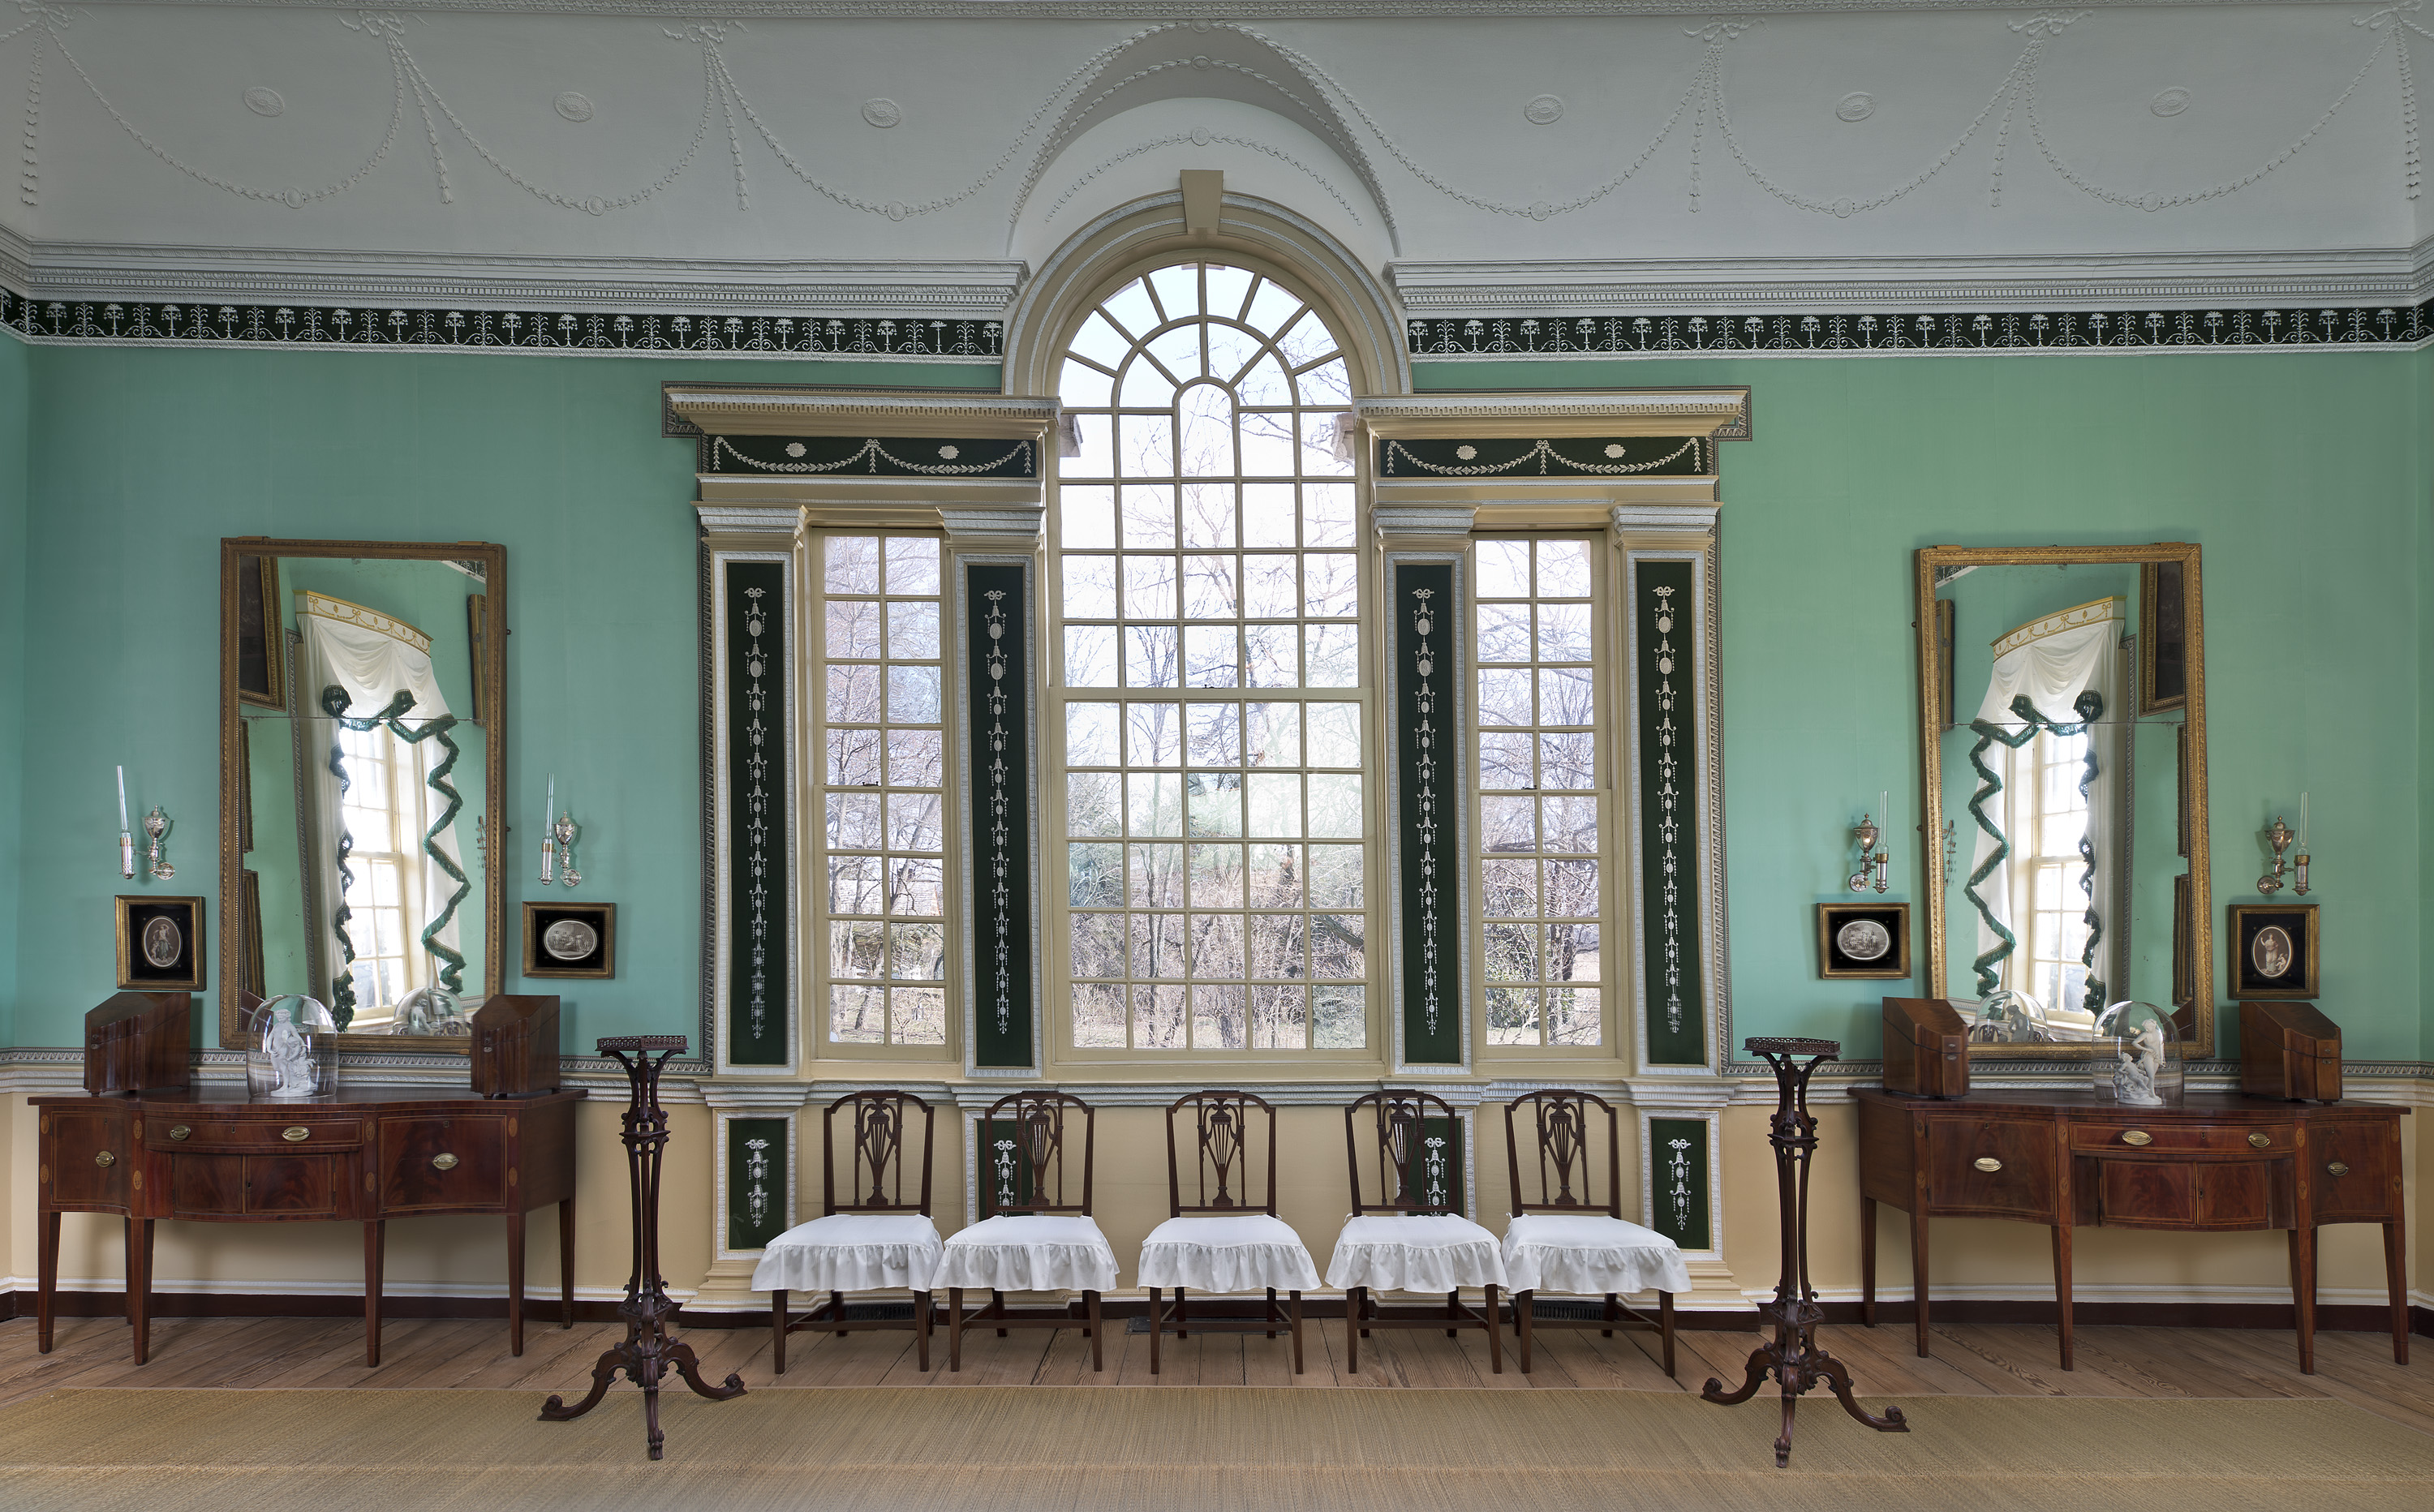 The Palladian Window at the center of the New Room